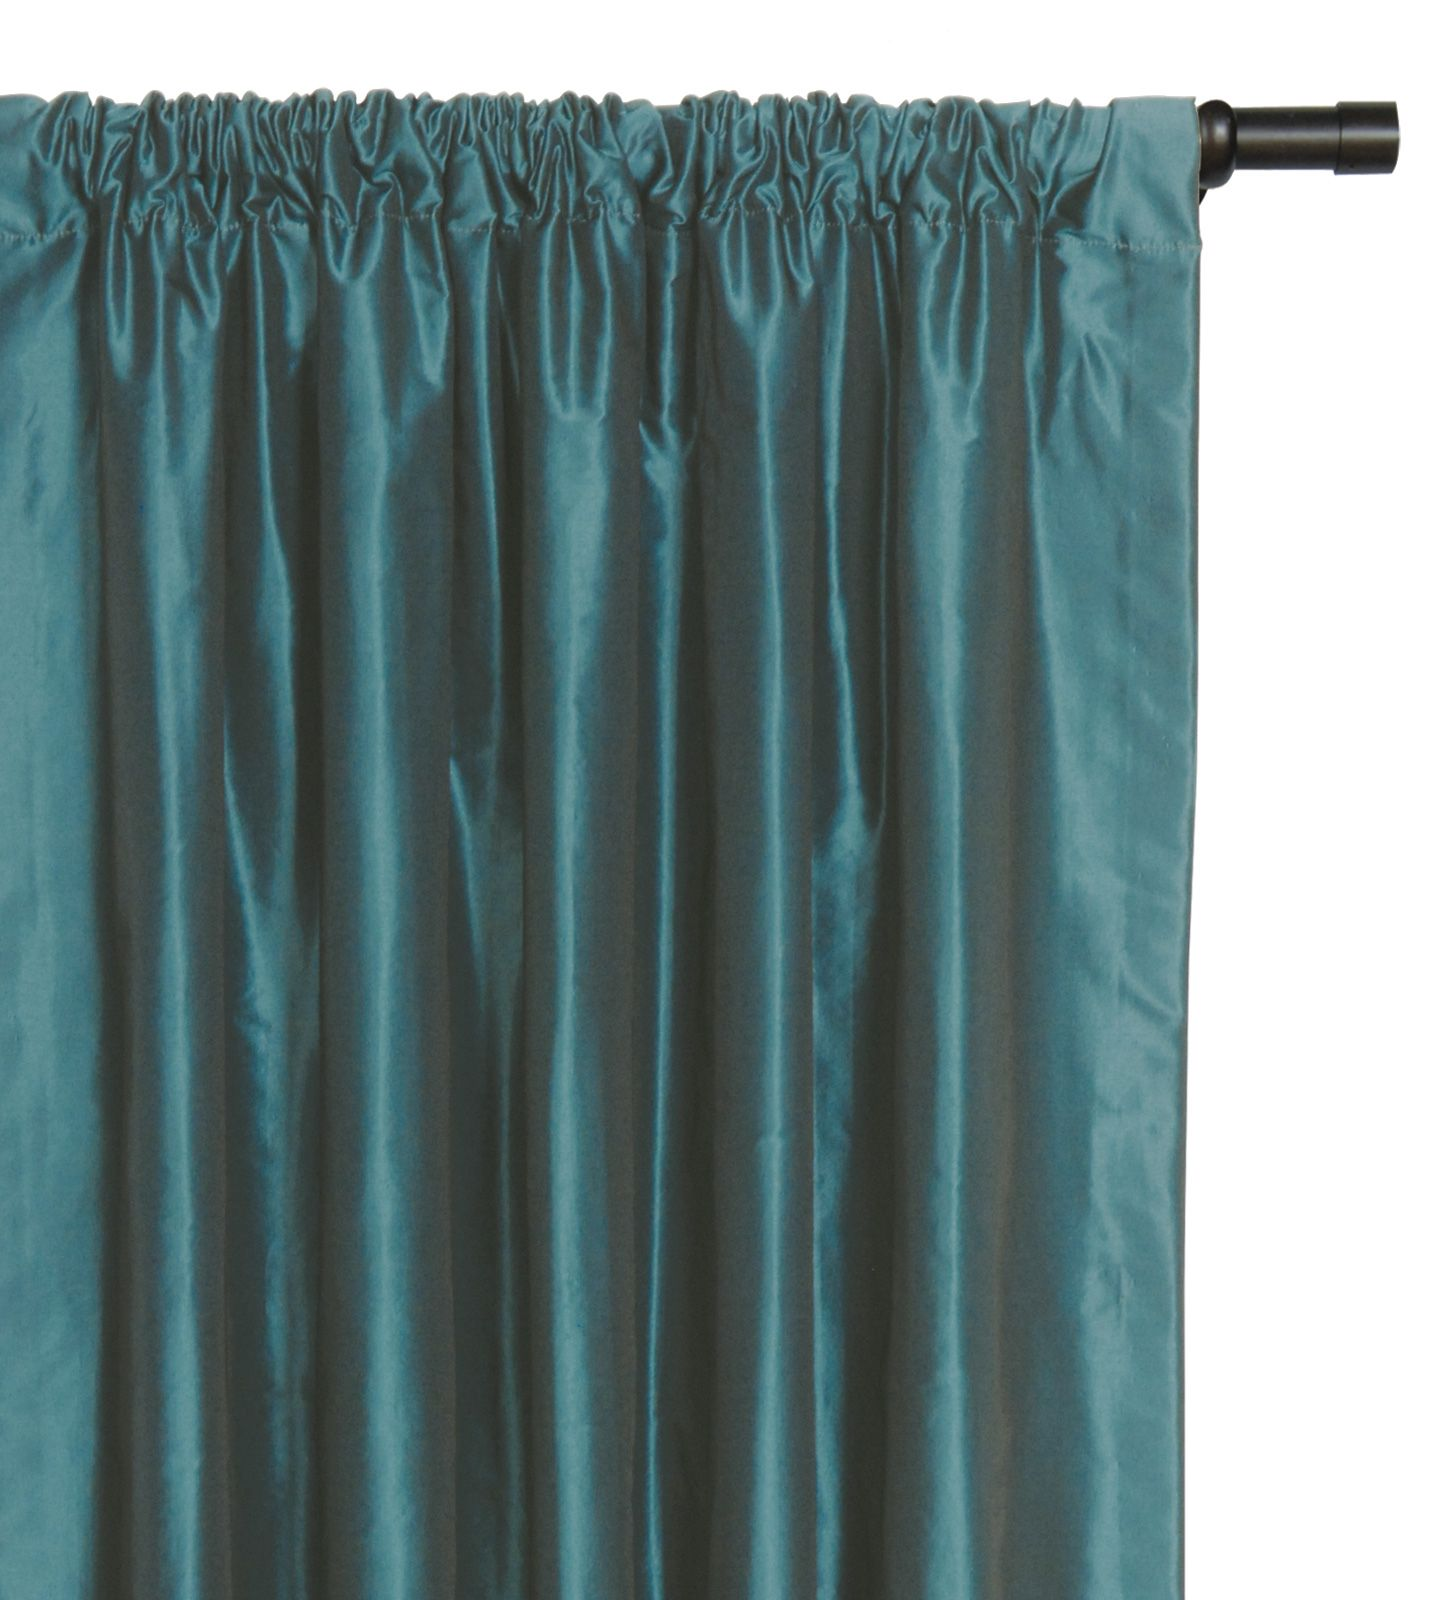 Teal Drapes Panels Luxury Bedding By Eastern Accents